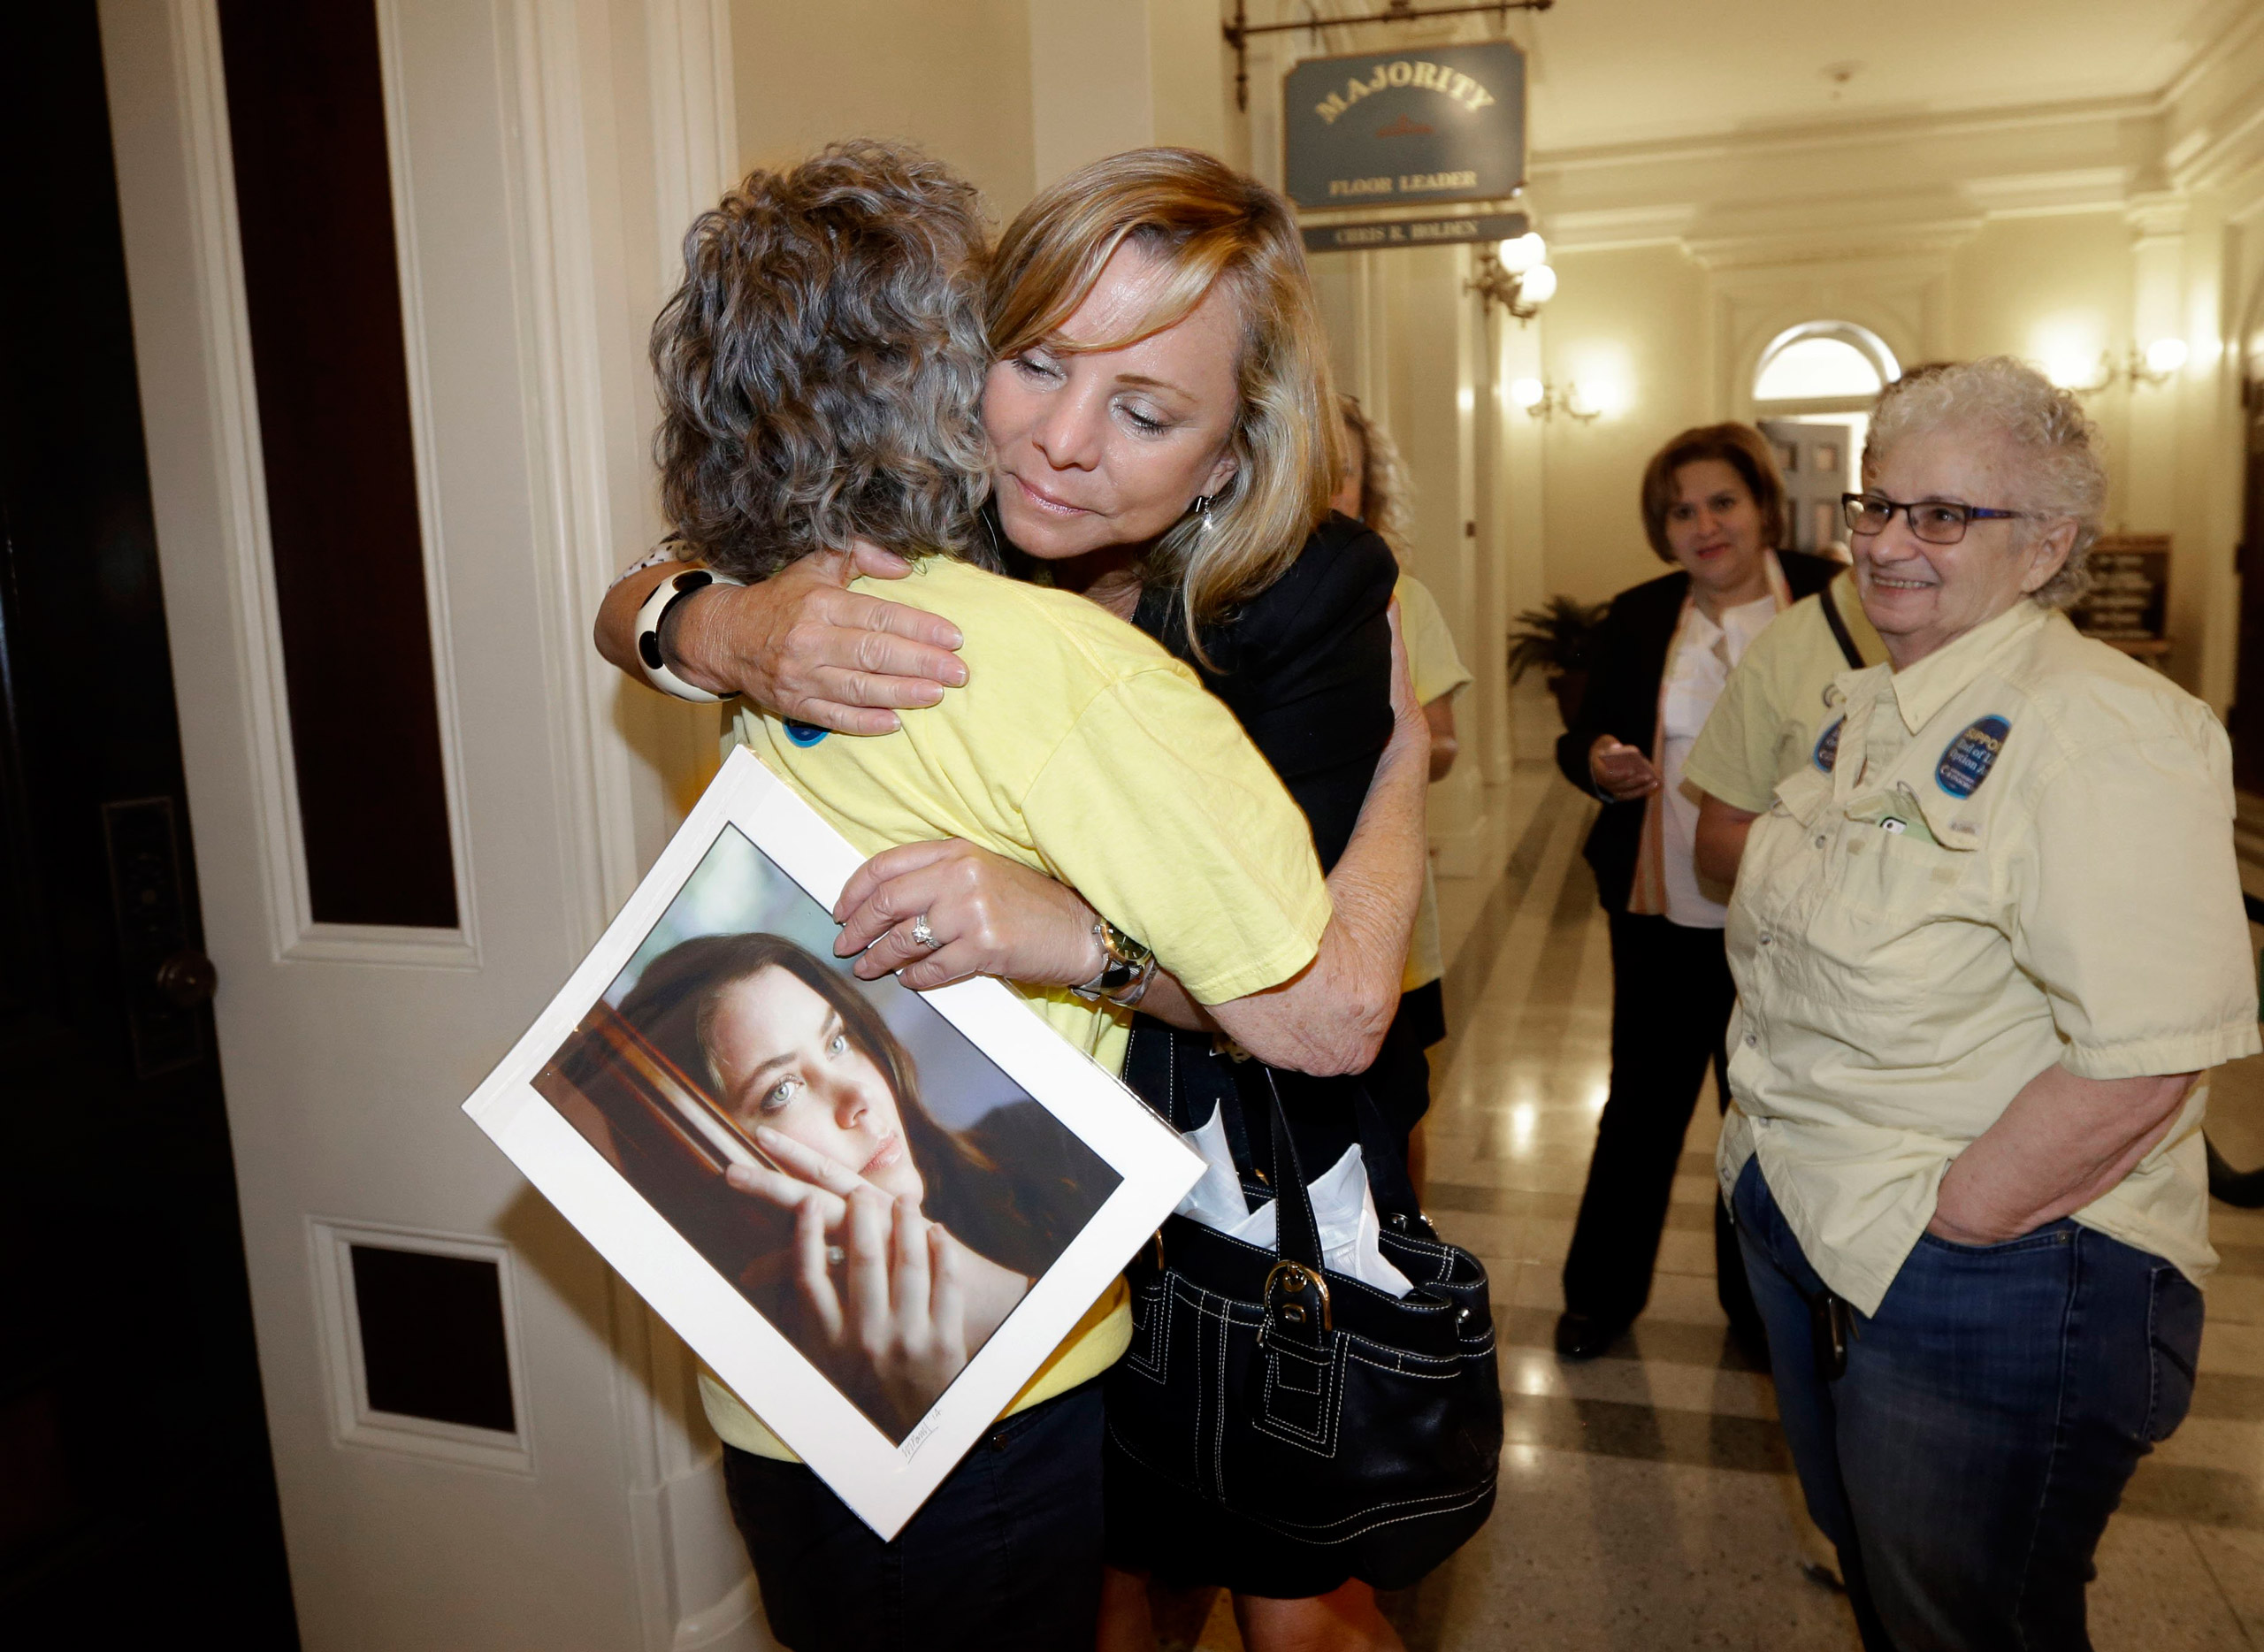 Debbie Ziegler holds a photo of her daughter, Brittany Maynard, as she receives congratulations from Ellen Pontac, after a right-to die measure was approved by the state Assembly, in Sacramento, Calif., on Sept. 9, 2015.